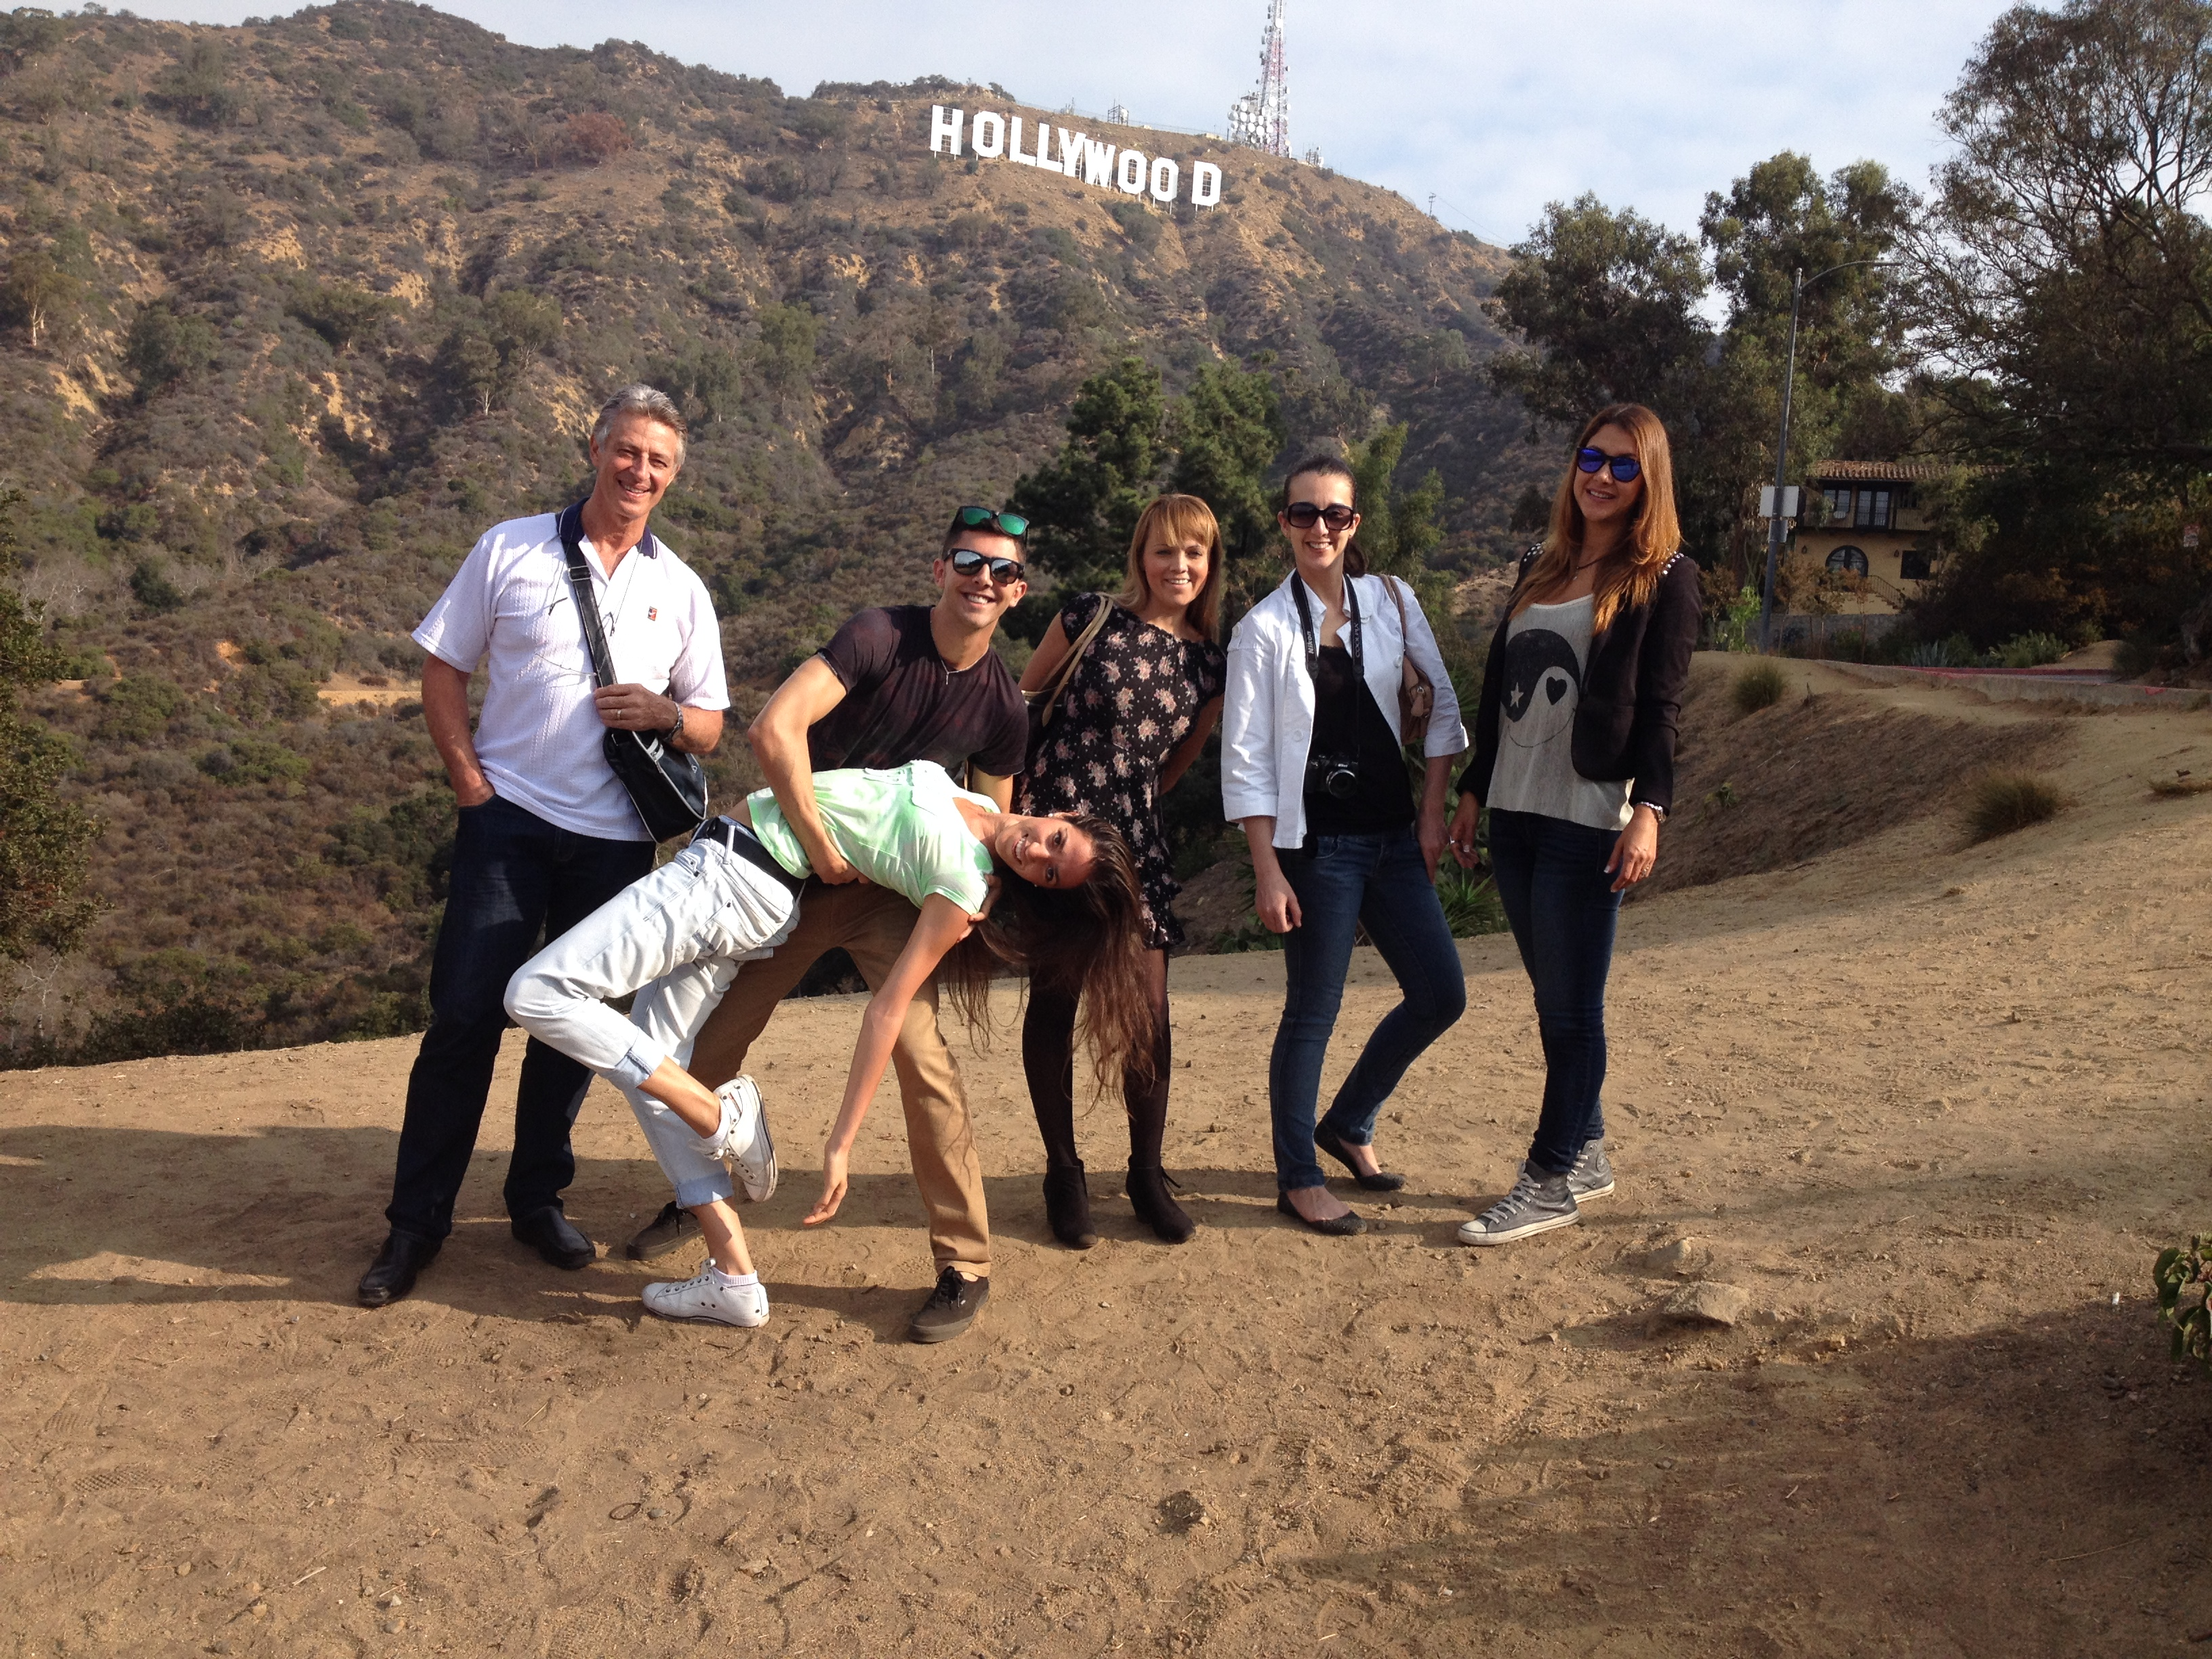 Silly posing at Hollywood Sign